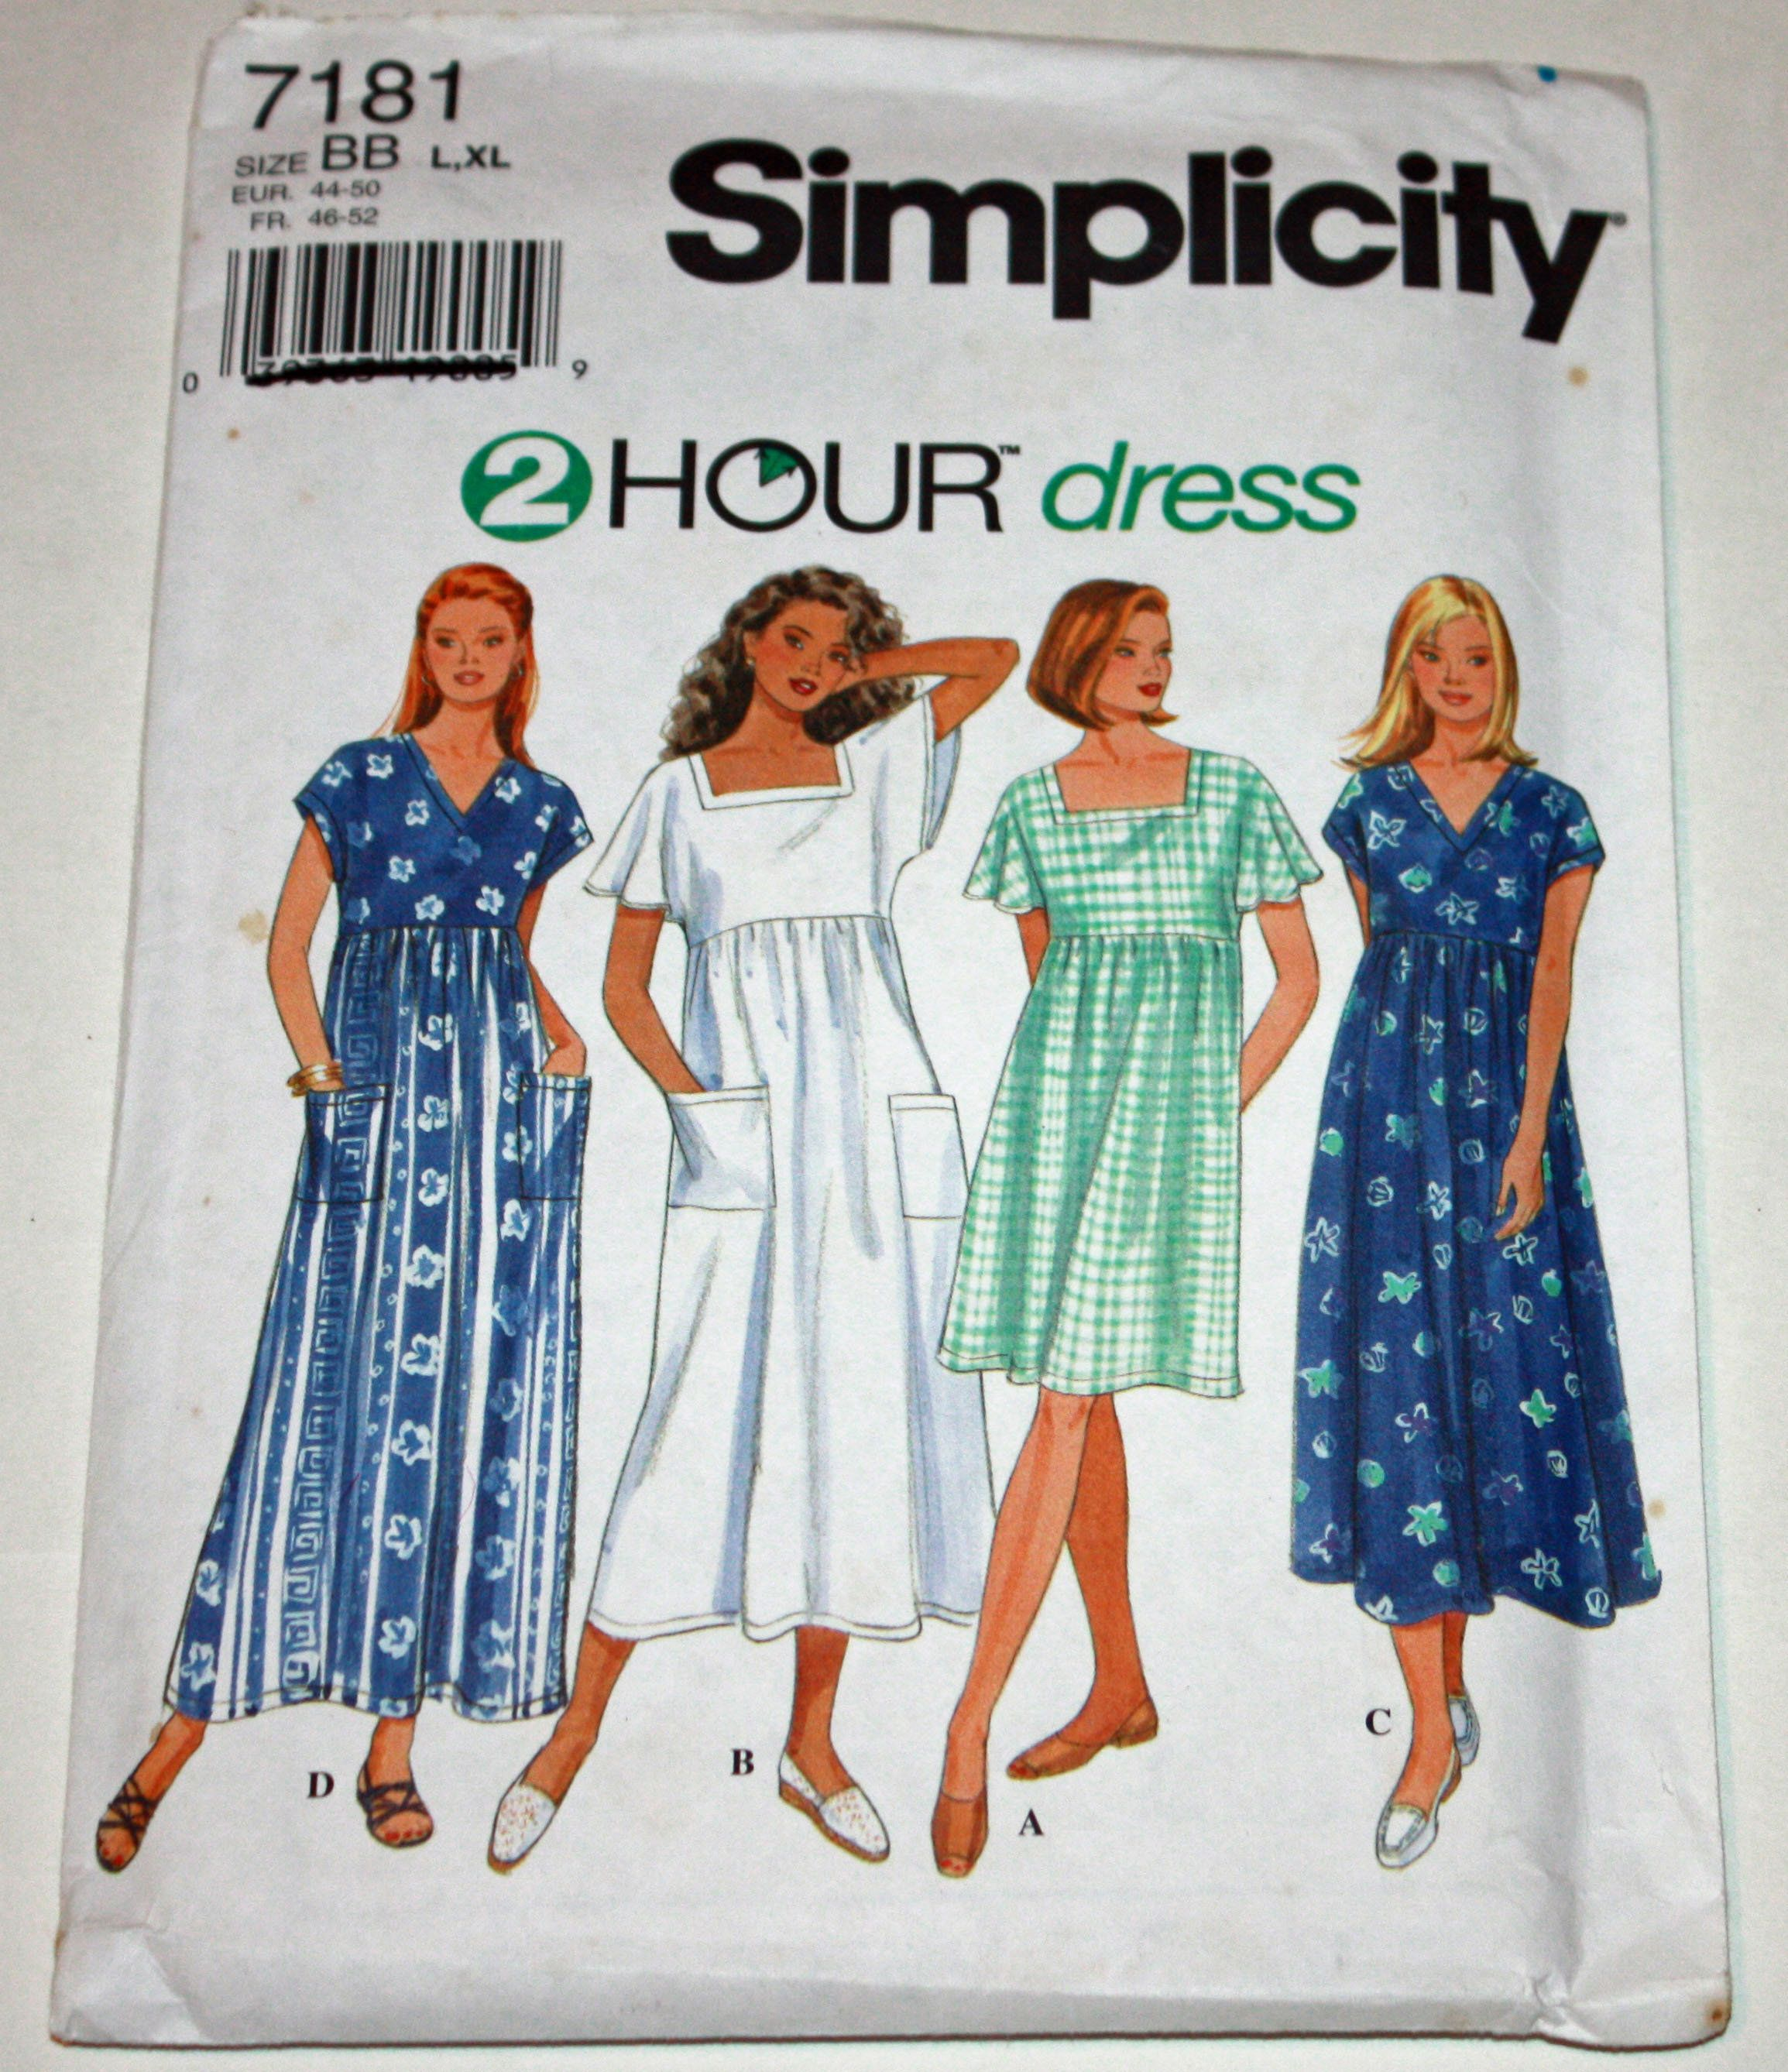 Uncut Ff Vintage 1990s Sewing Pattern Simplicity 7181 Misses Dress Size Large Xlarge S Kids Fashion Clothes Mix Match Outfits Womens Sewing Patterns